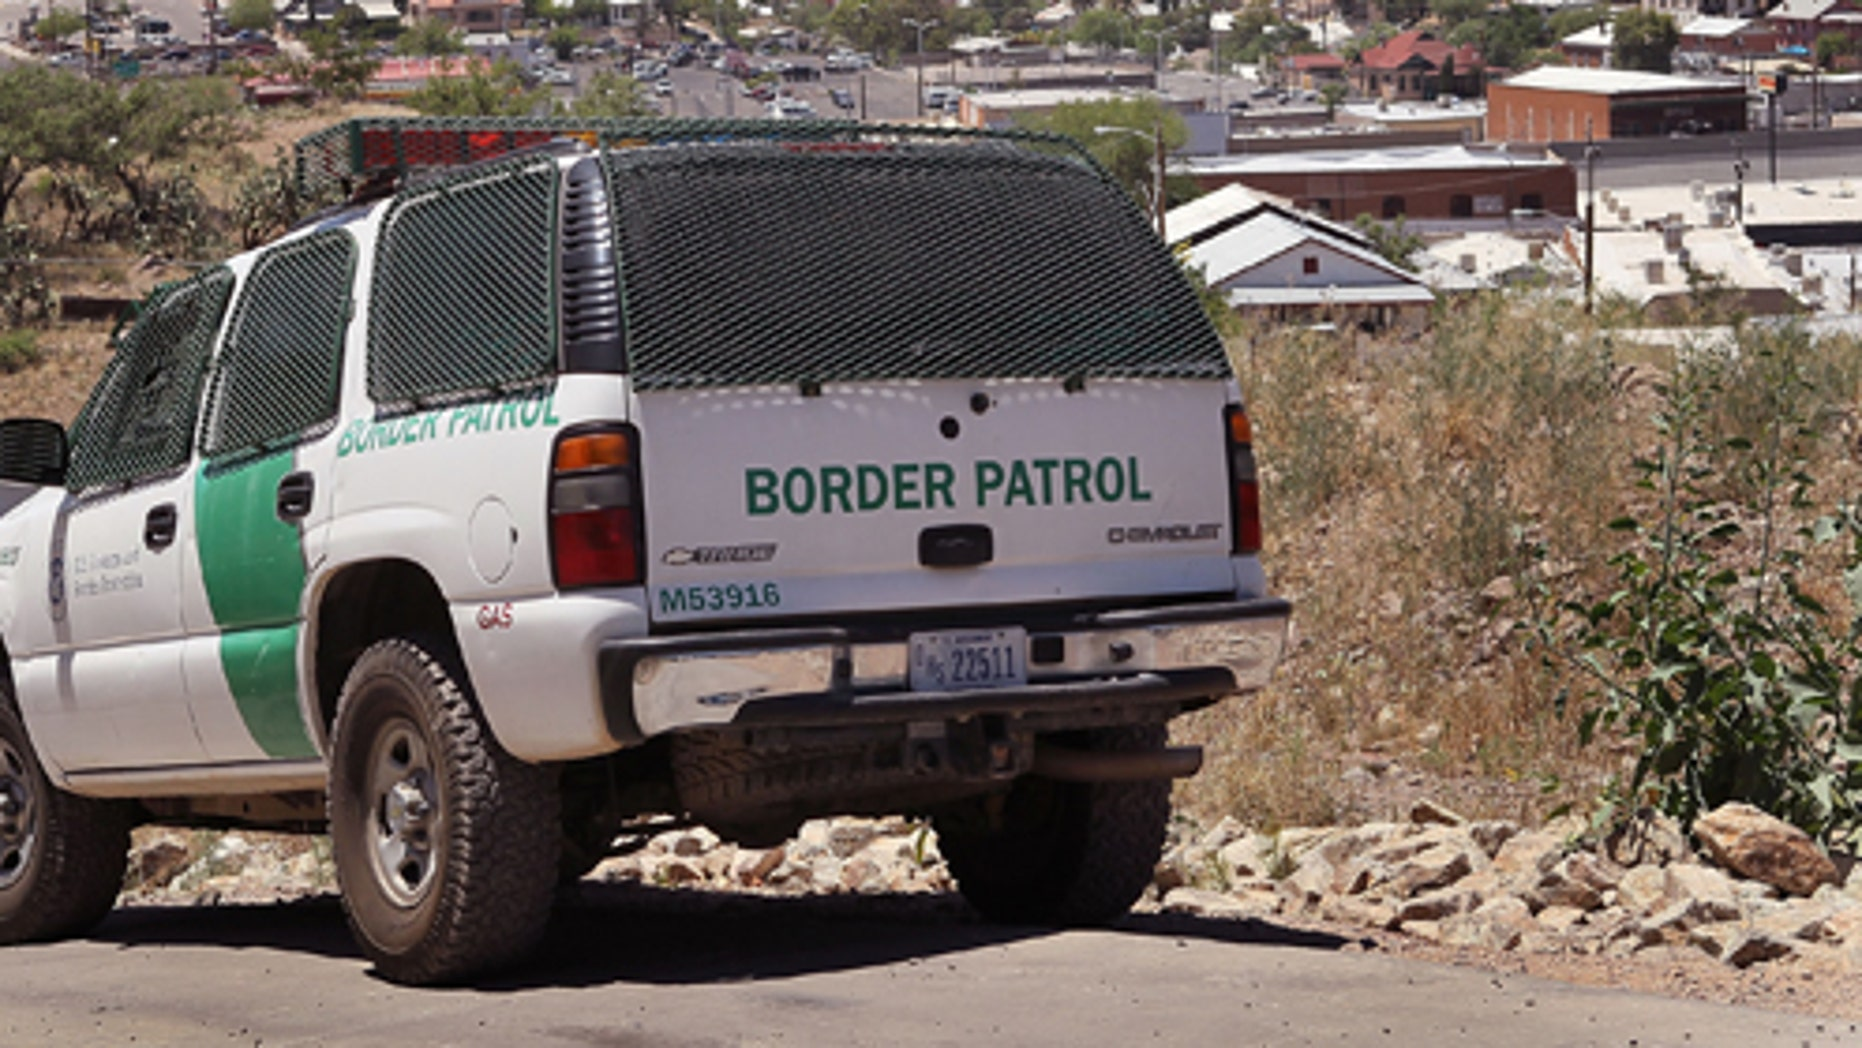 NOGALES, AZ - JUNE 01:  A Border Patrol agent patrols the border June 1, 2010 in Nogales, Arizona. During the 2009 fiscal year 540,865 undocumented immigrants were apprehended entering the United States illegally along the Mexican border, 241,000 of those were captured along this 262 mile stretch of the border known as the Tucson Sector.  (Photo by Scott Olson/Getty Images)